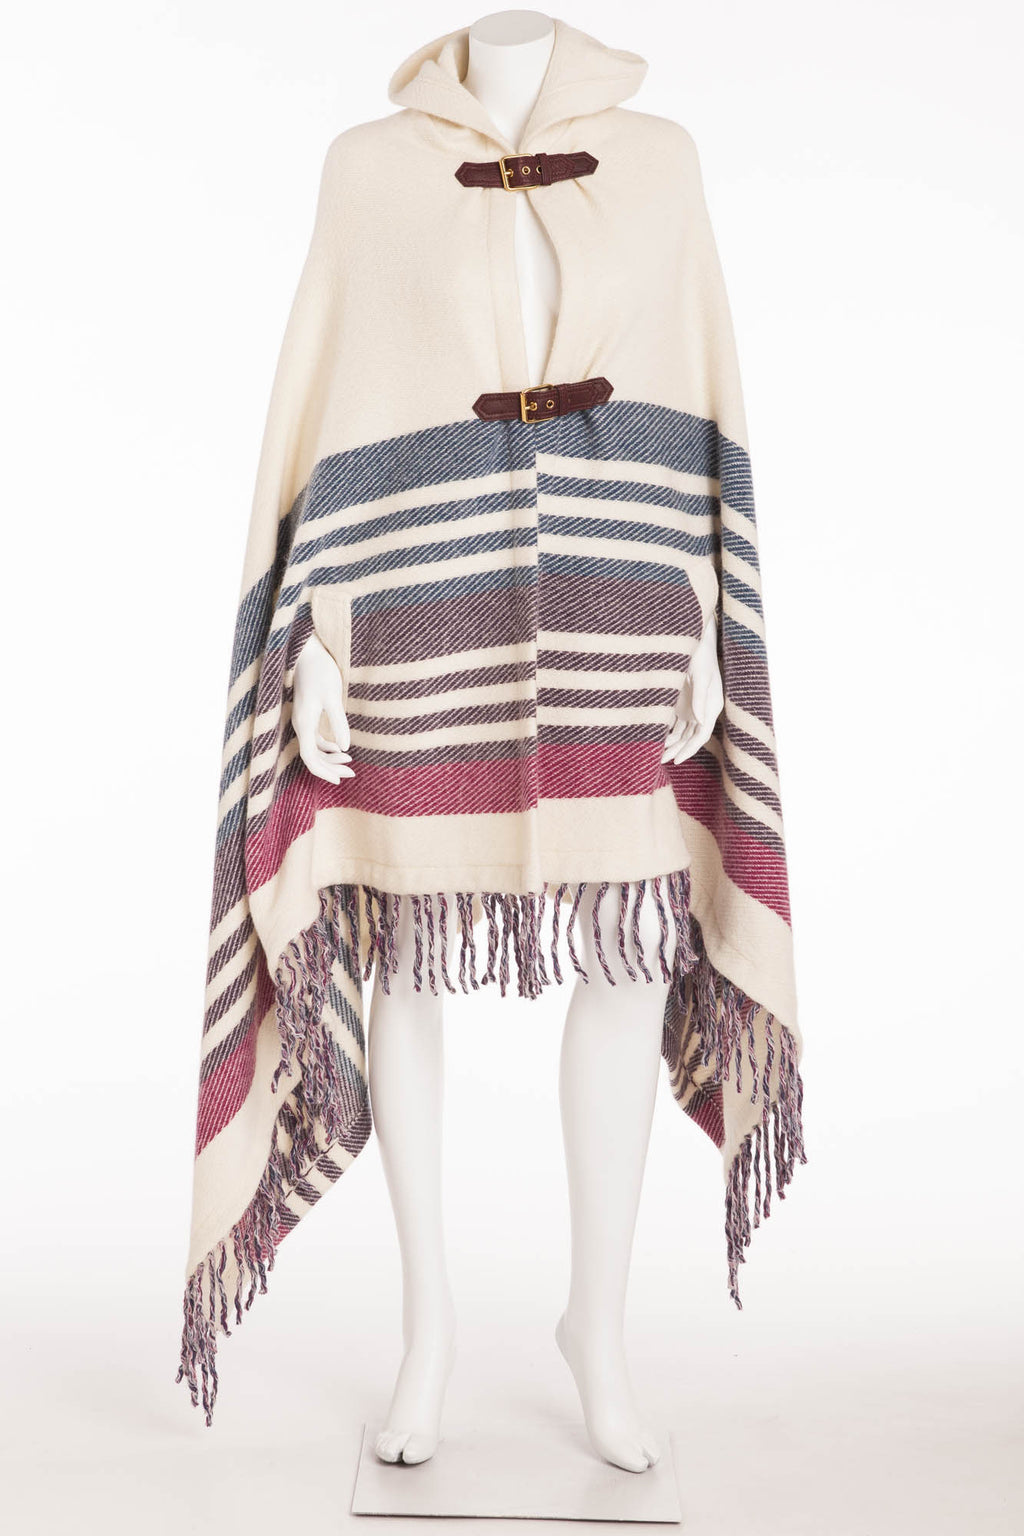 Emilio Pucci - White Blue Purple Pink Poncho Fringe Bottom with Leather Buckle  - M